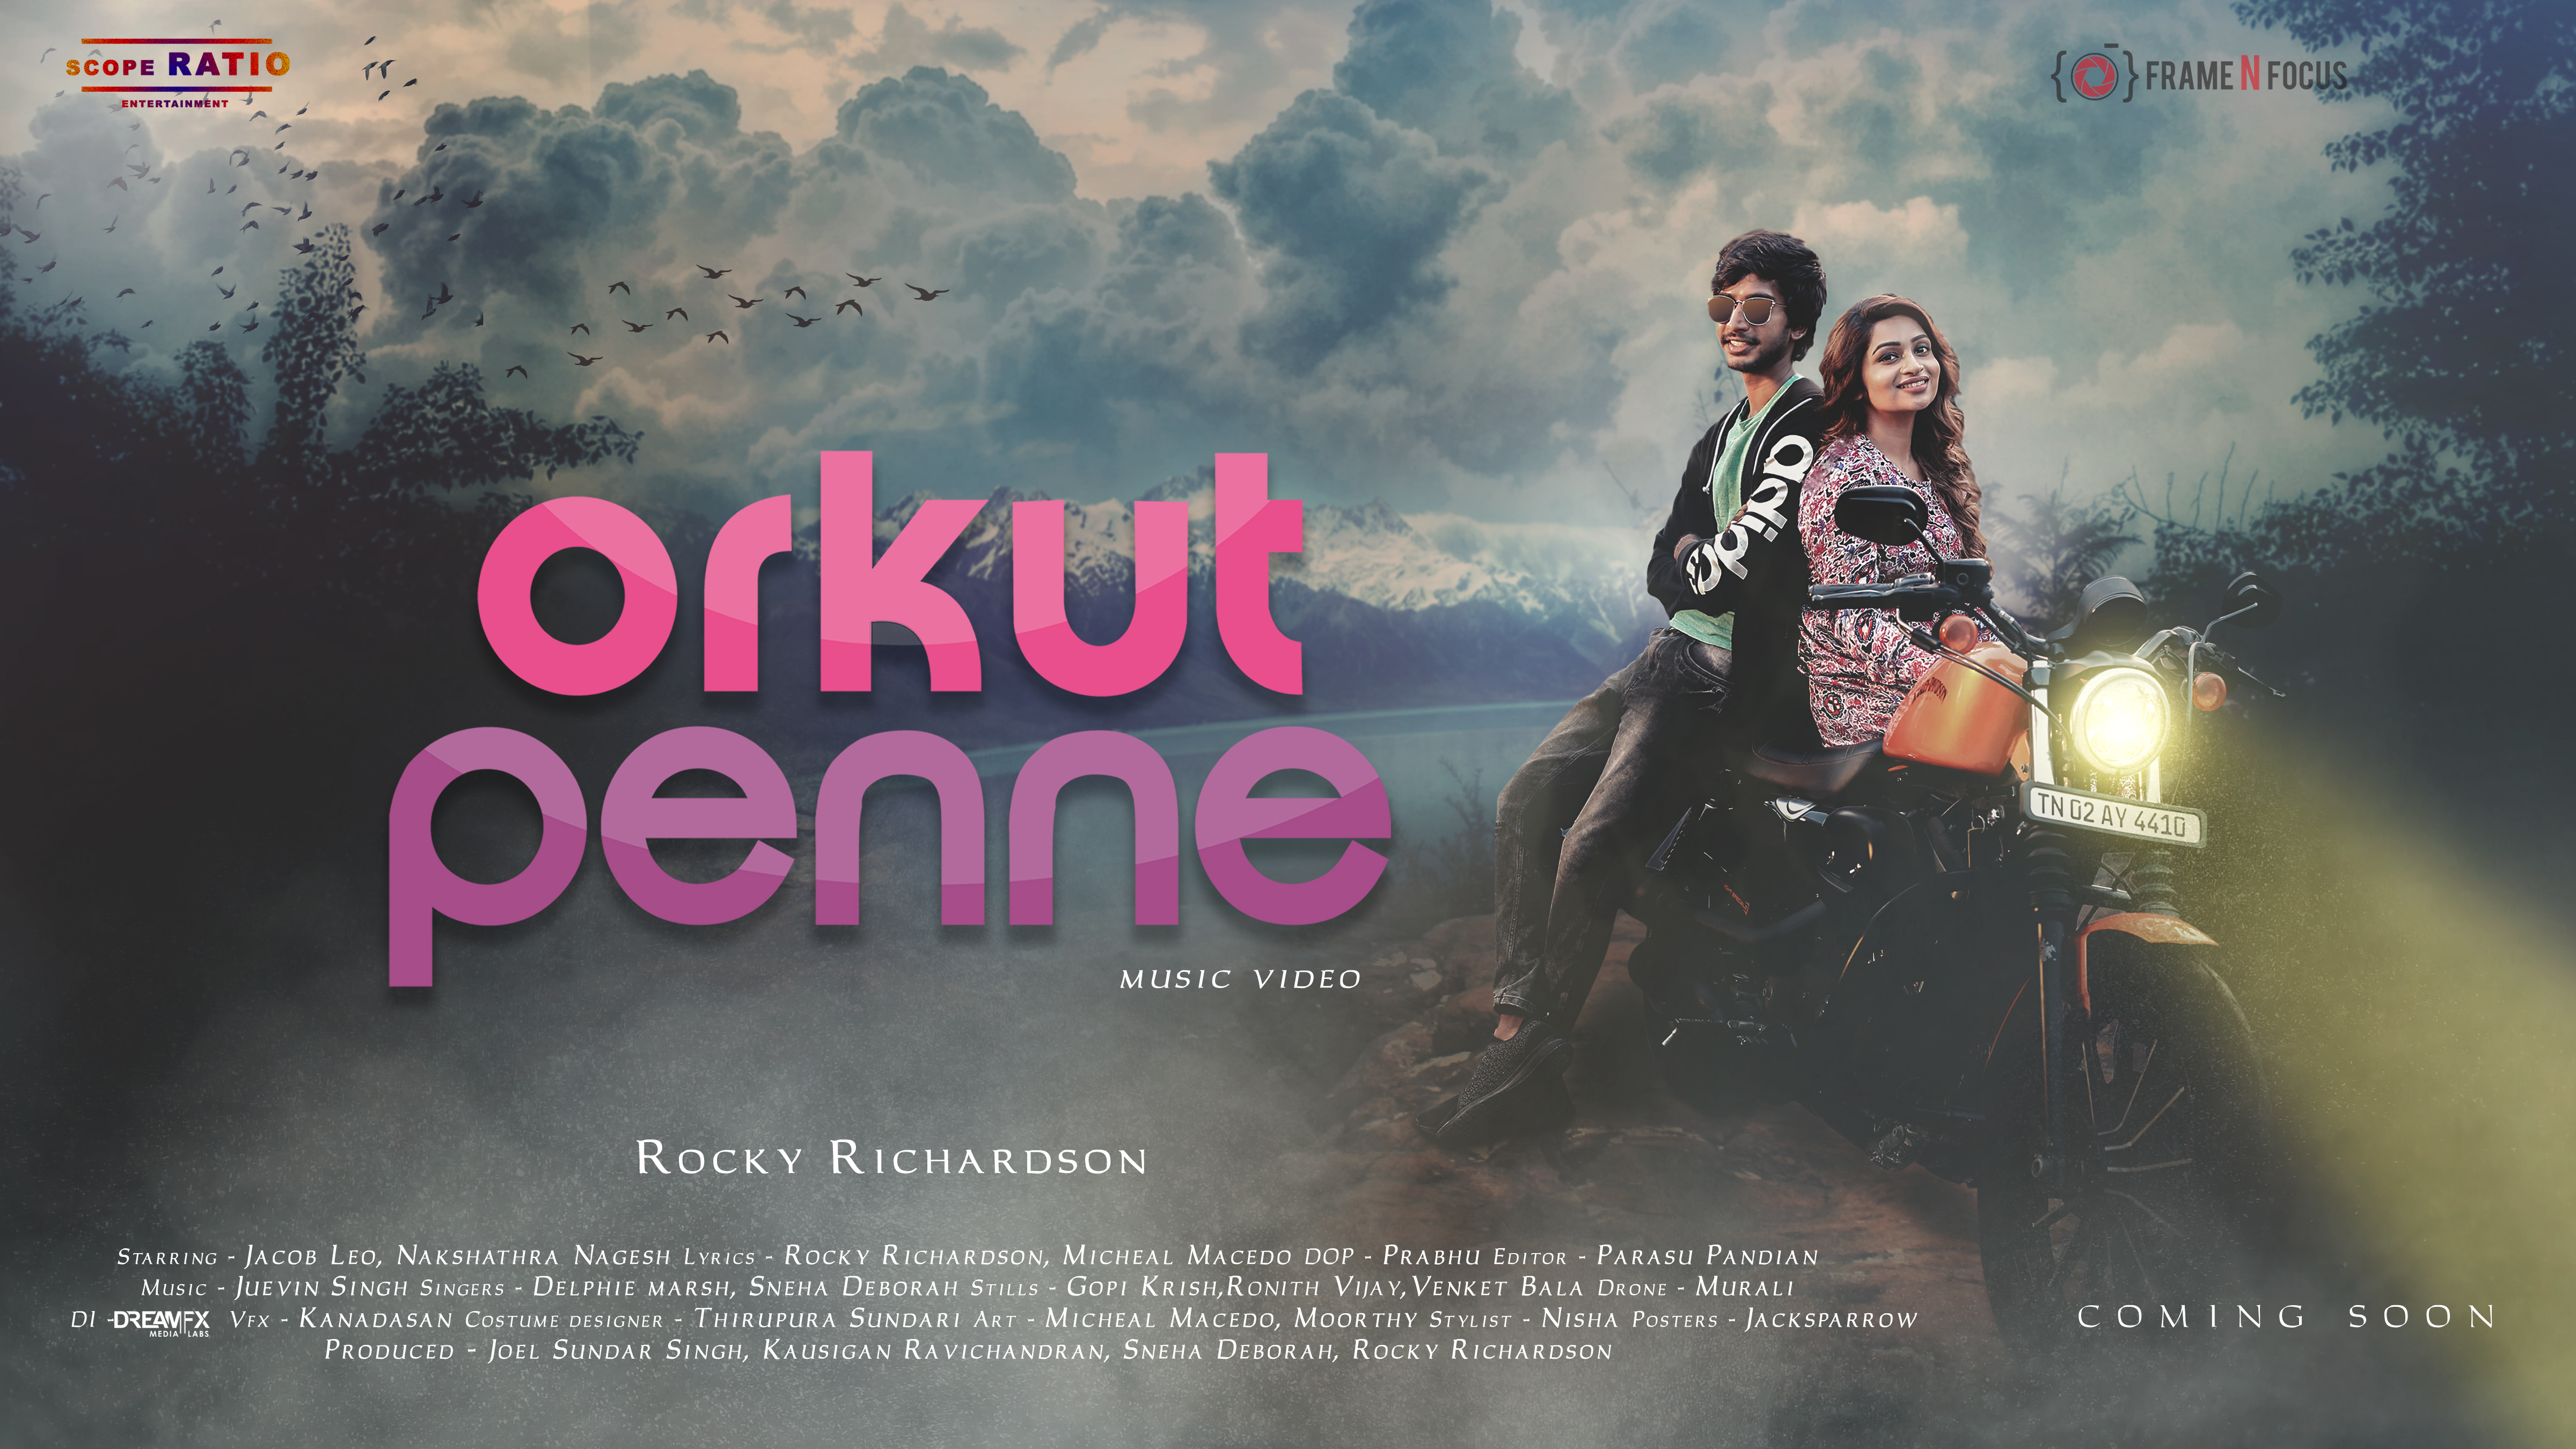 Orkut penne (music album)